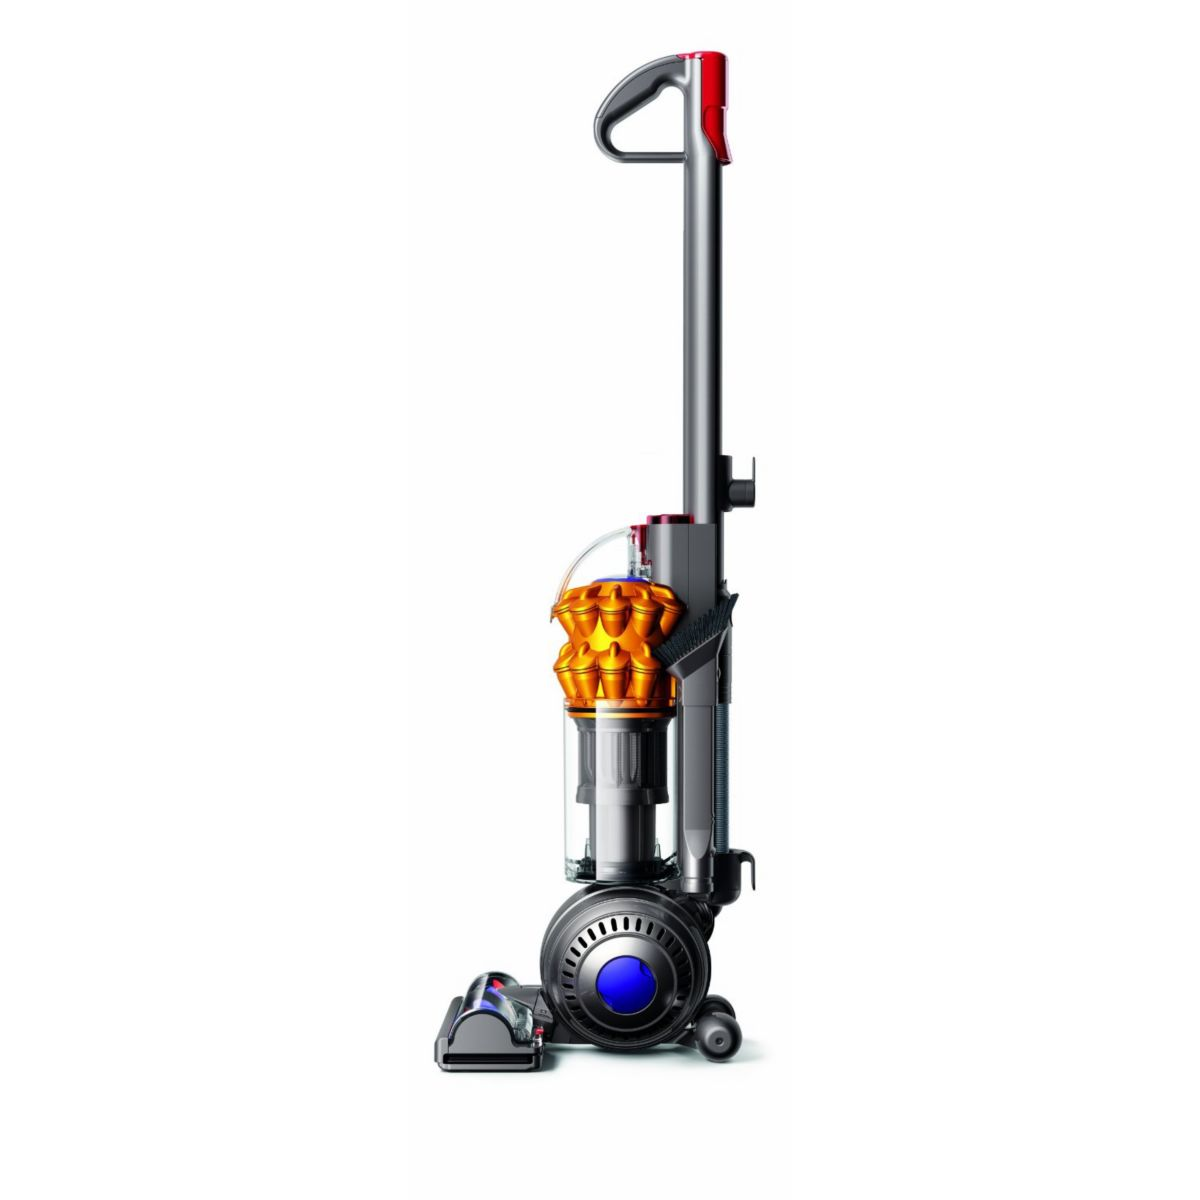 dyson dc51 multi floor aspirateur brosseur sans sac. Black Bedroom Furniture Sets. Home Design Ideas